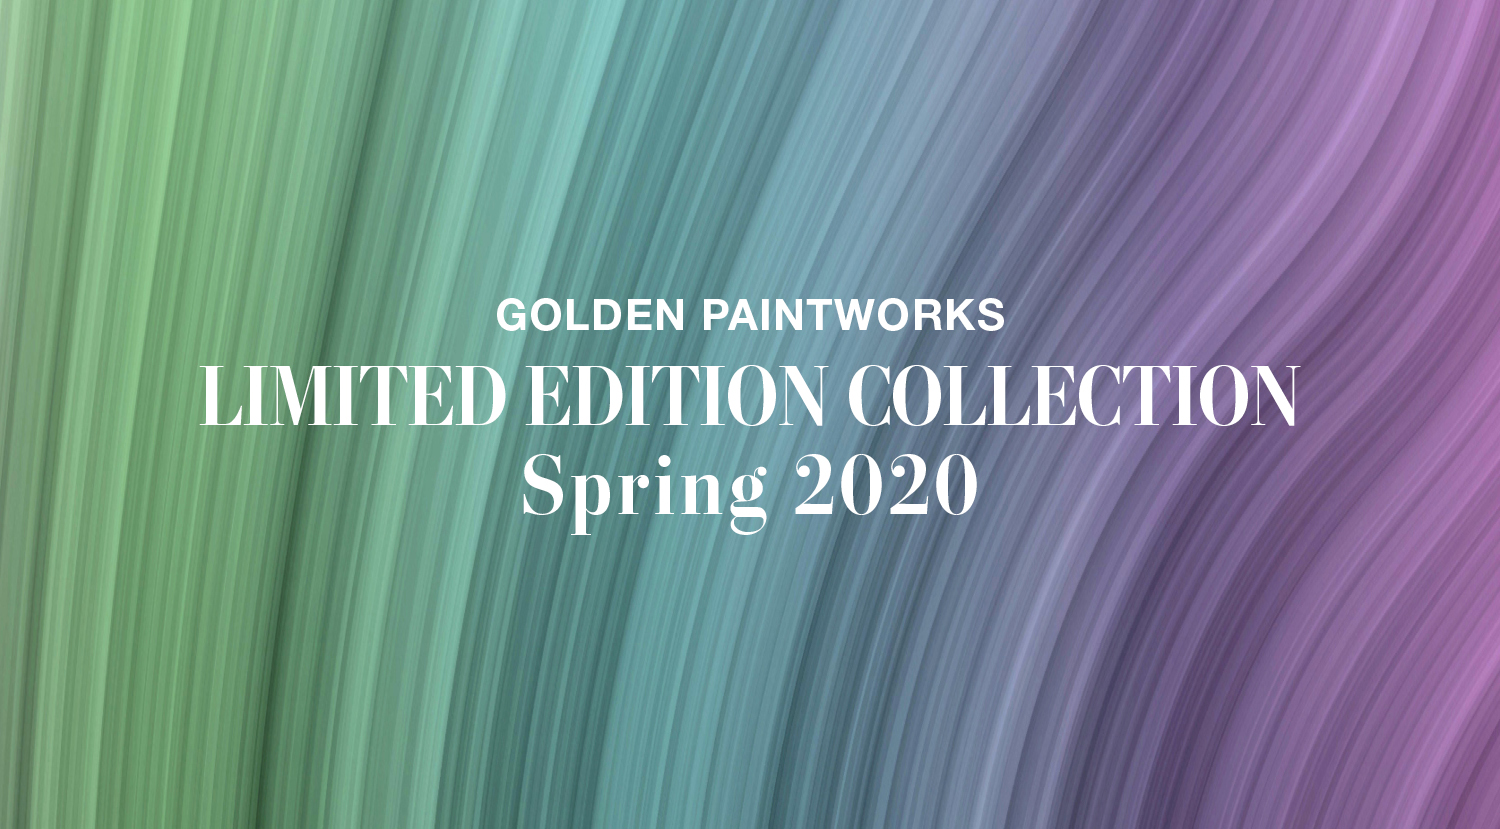 GPW Spring 2020 Limited Edition Collection